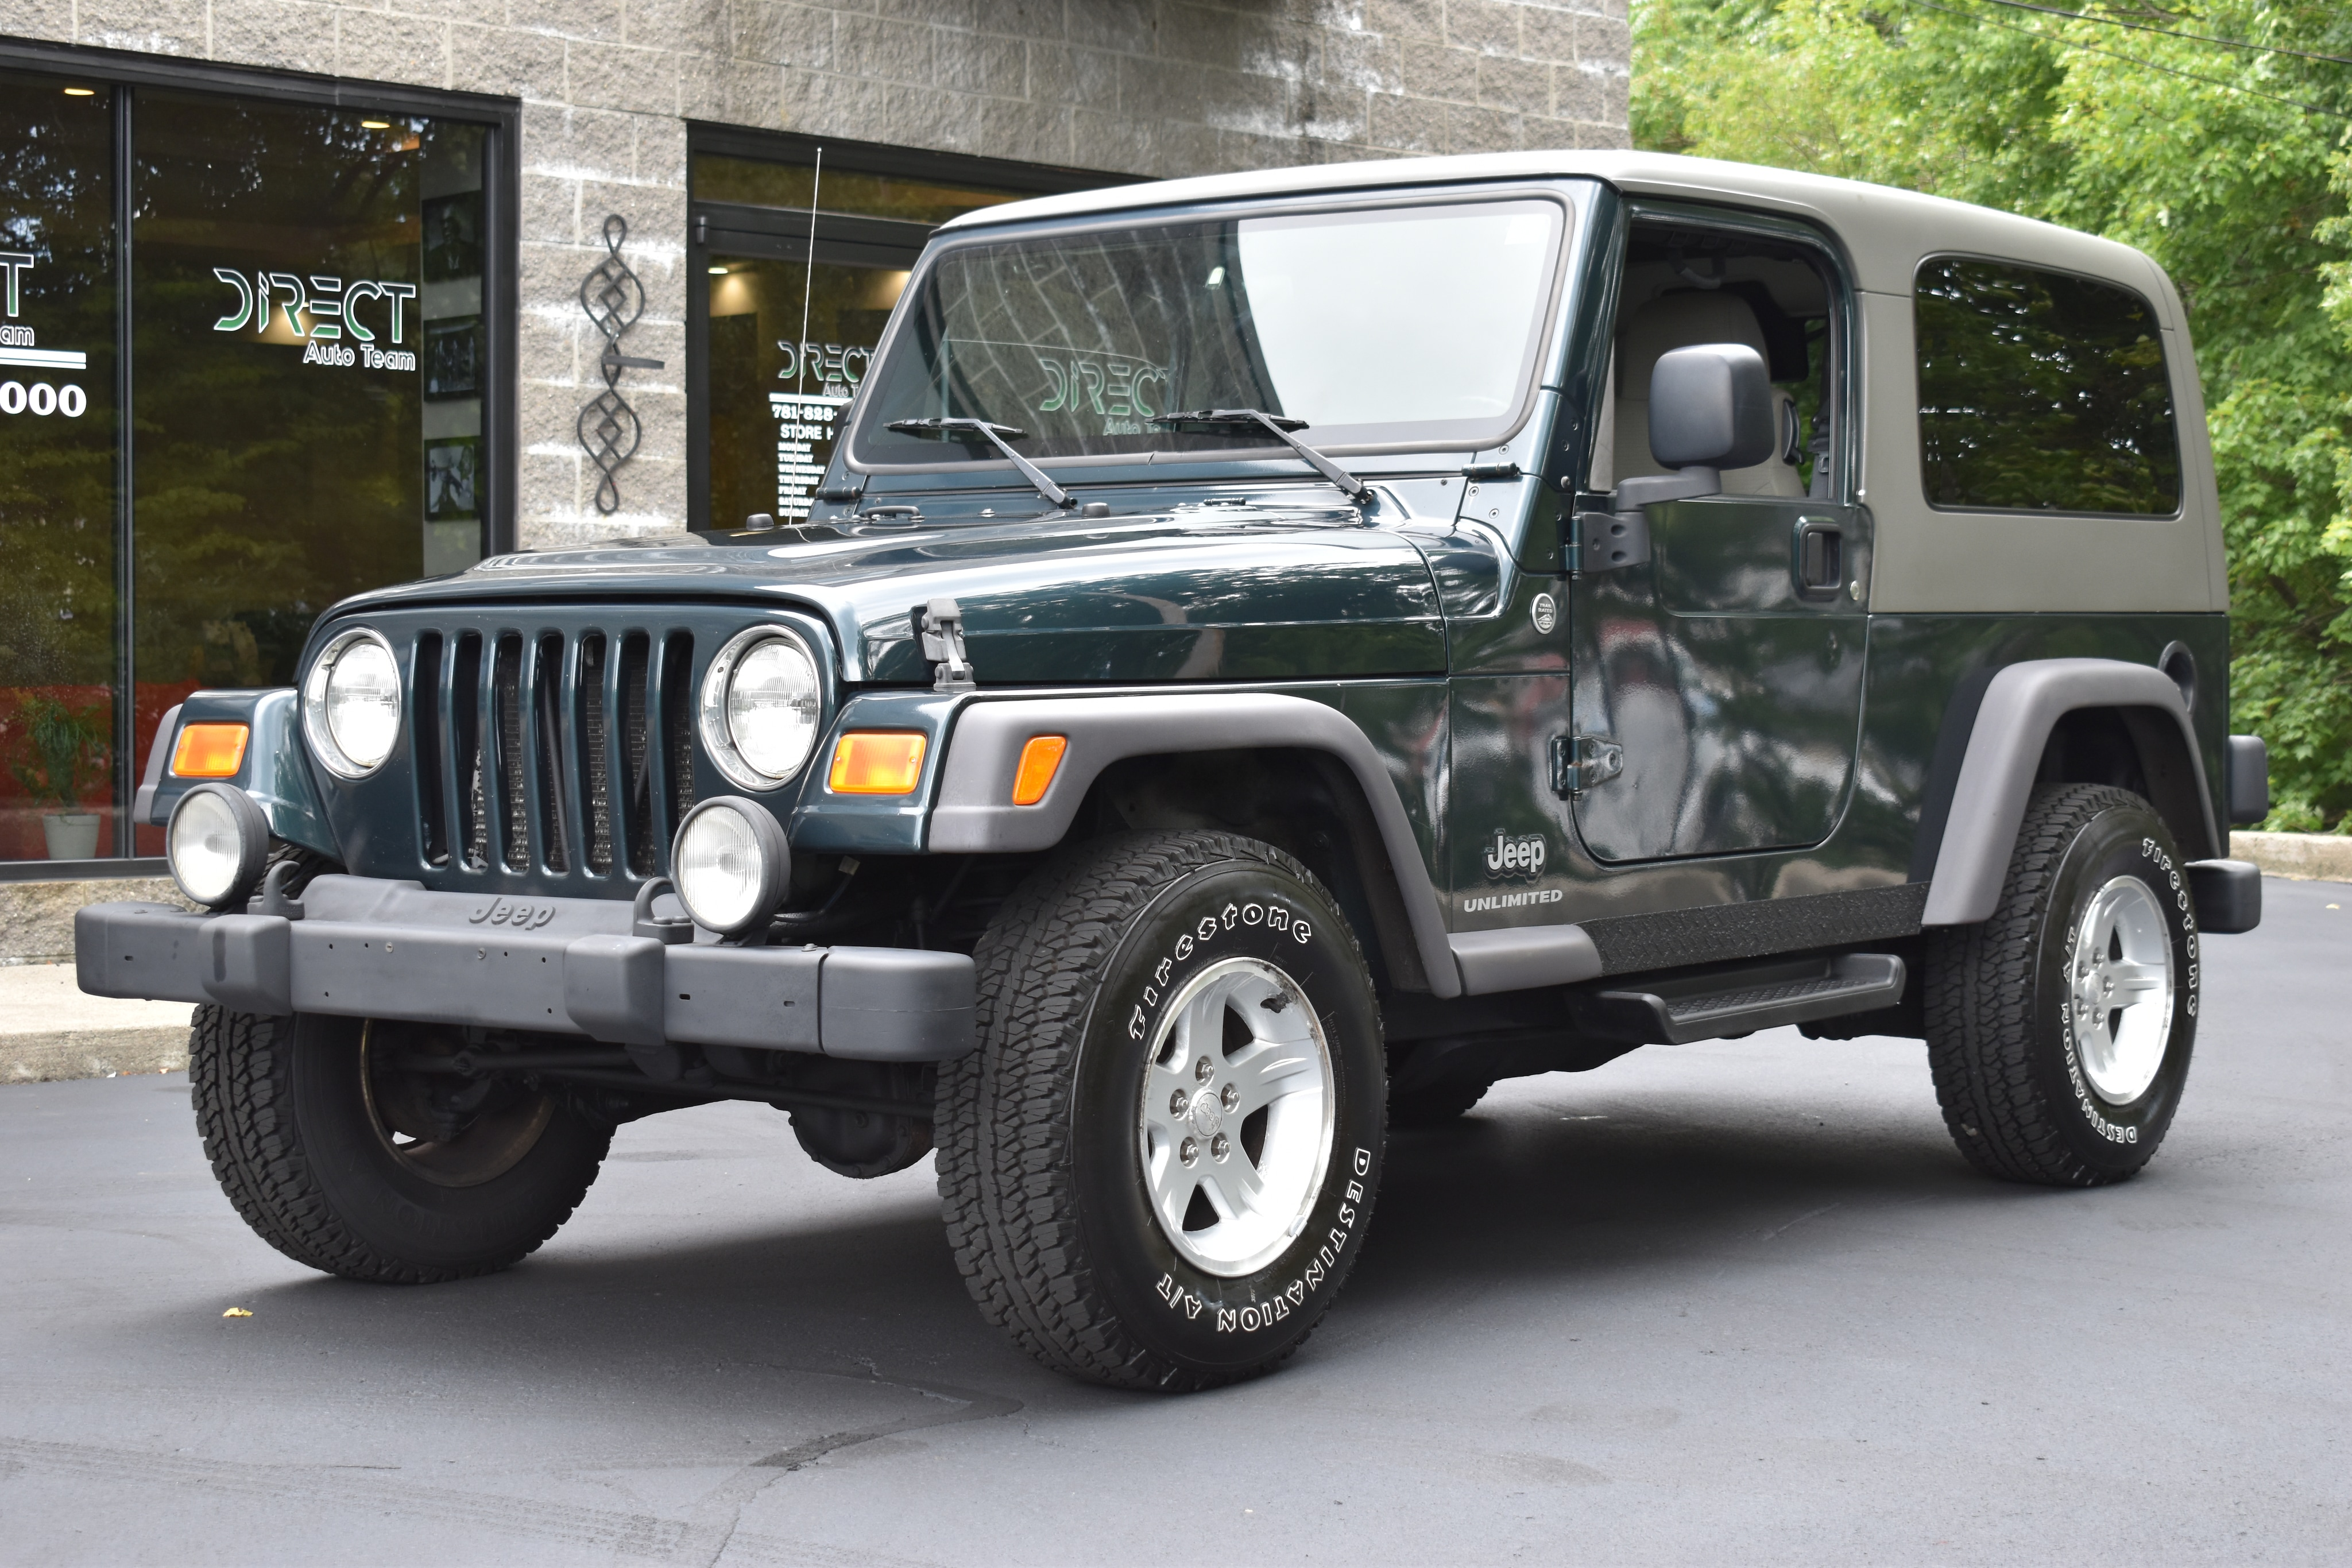 2006 Jeep Wrangler Unlimited Automatic 4x4 Hard Top SUV